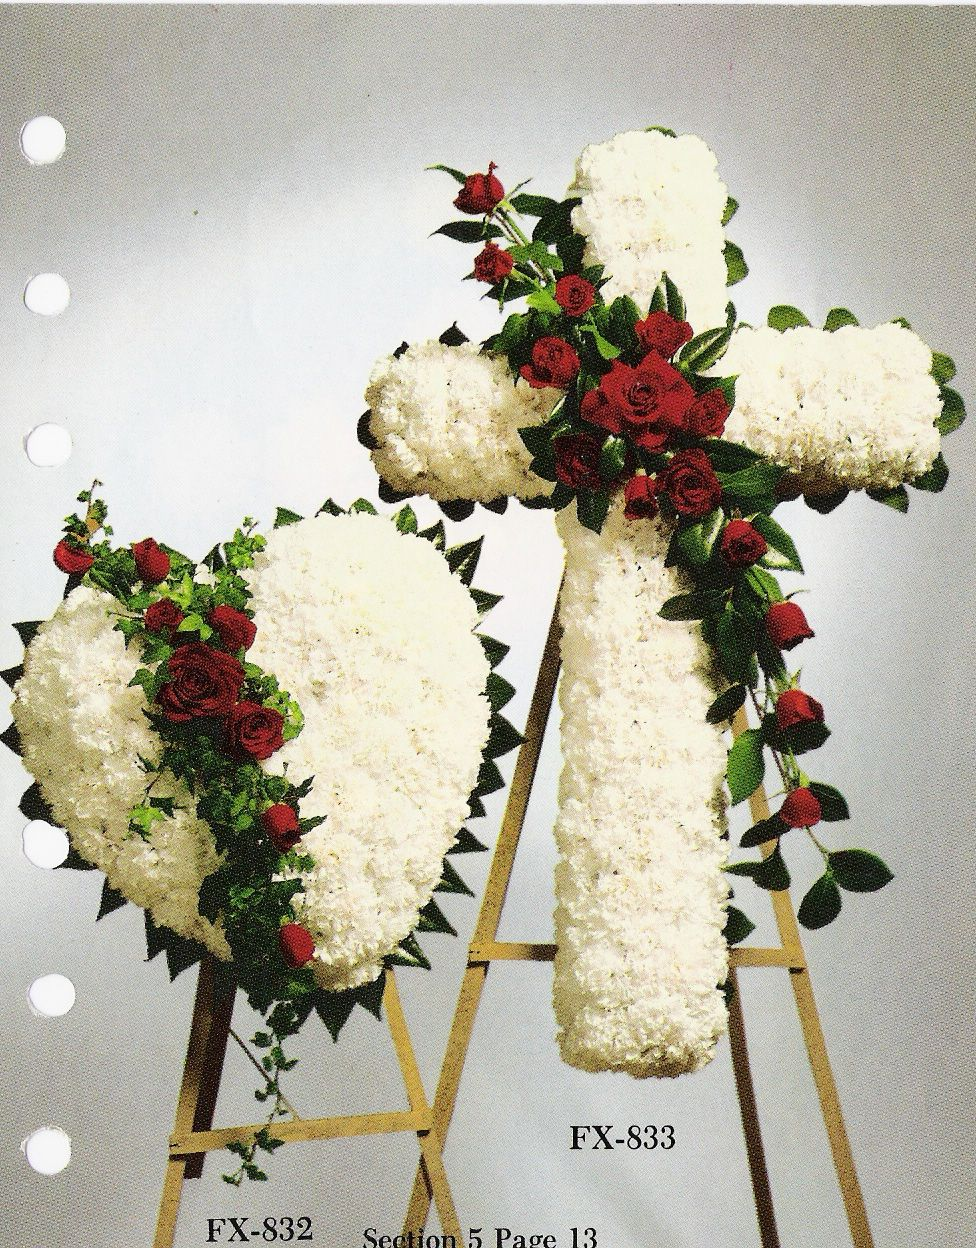 Flower arrangement for funeral google search funeral flower arrangement for funeral google search izmirmasajfo Image collections